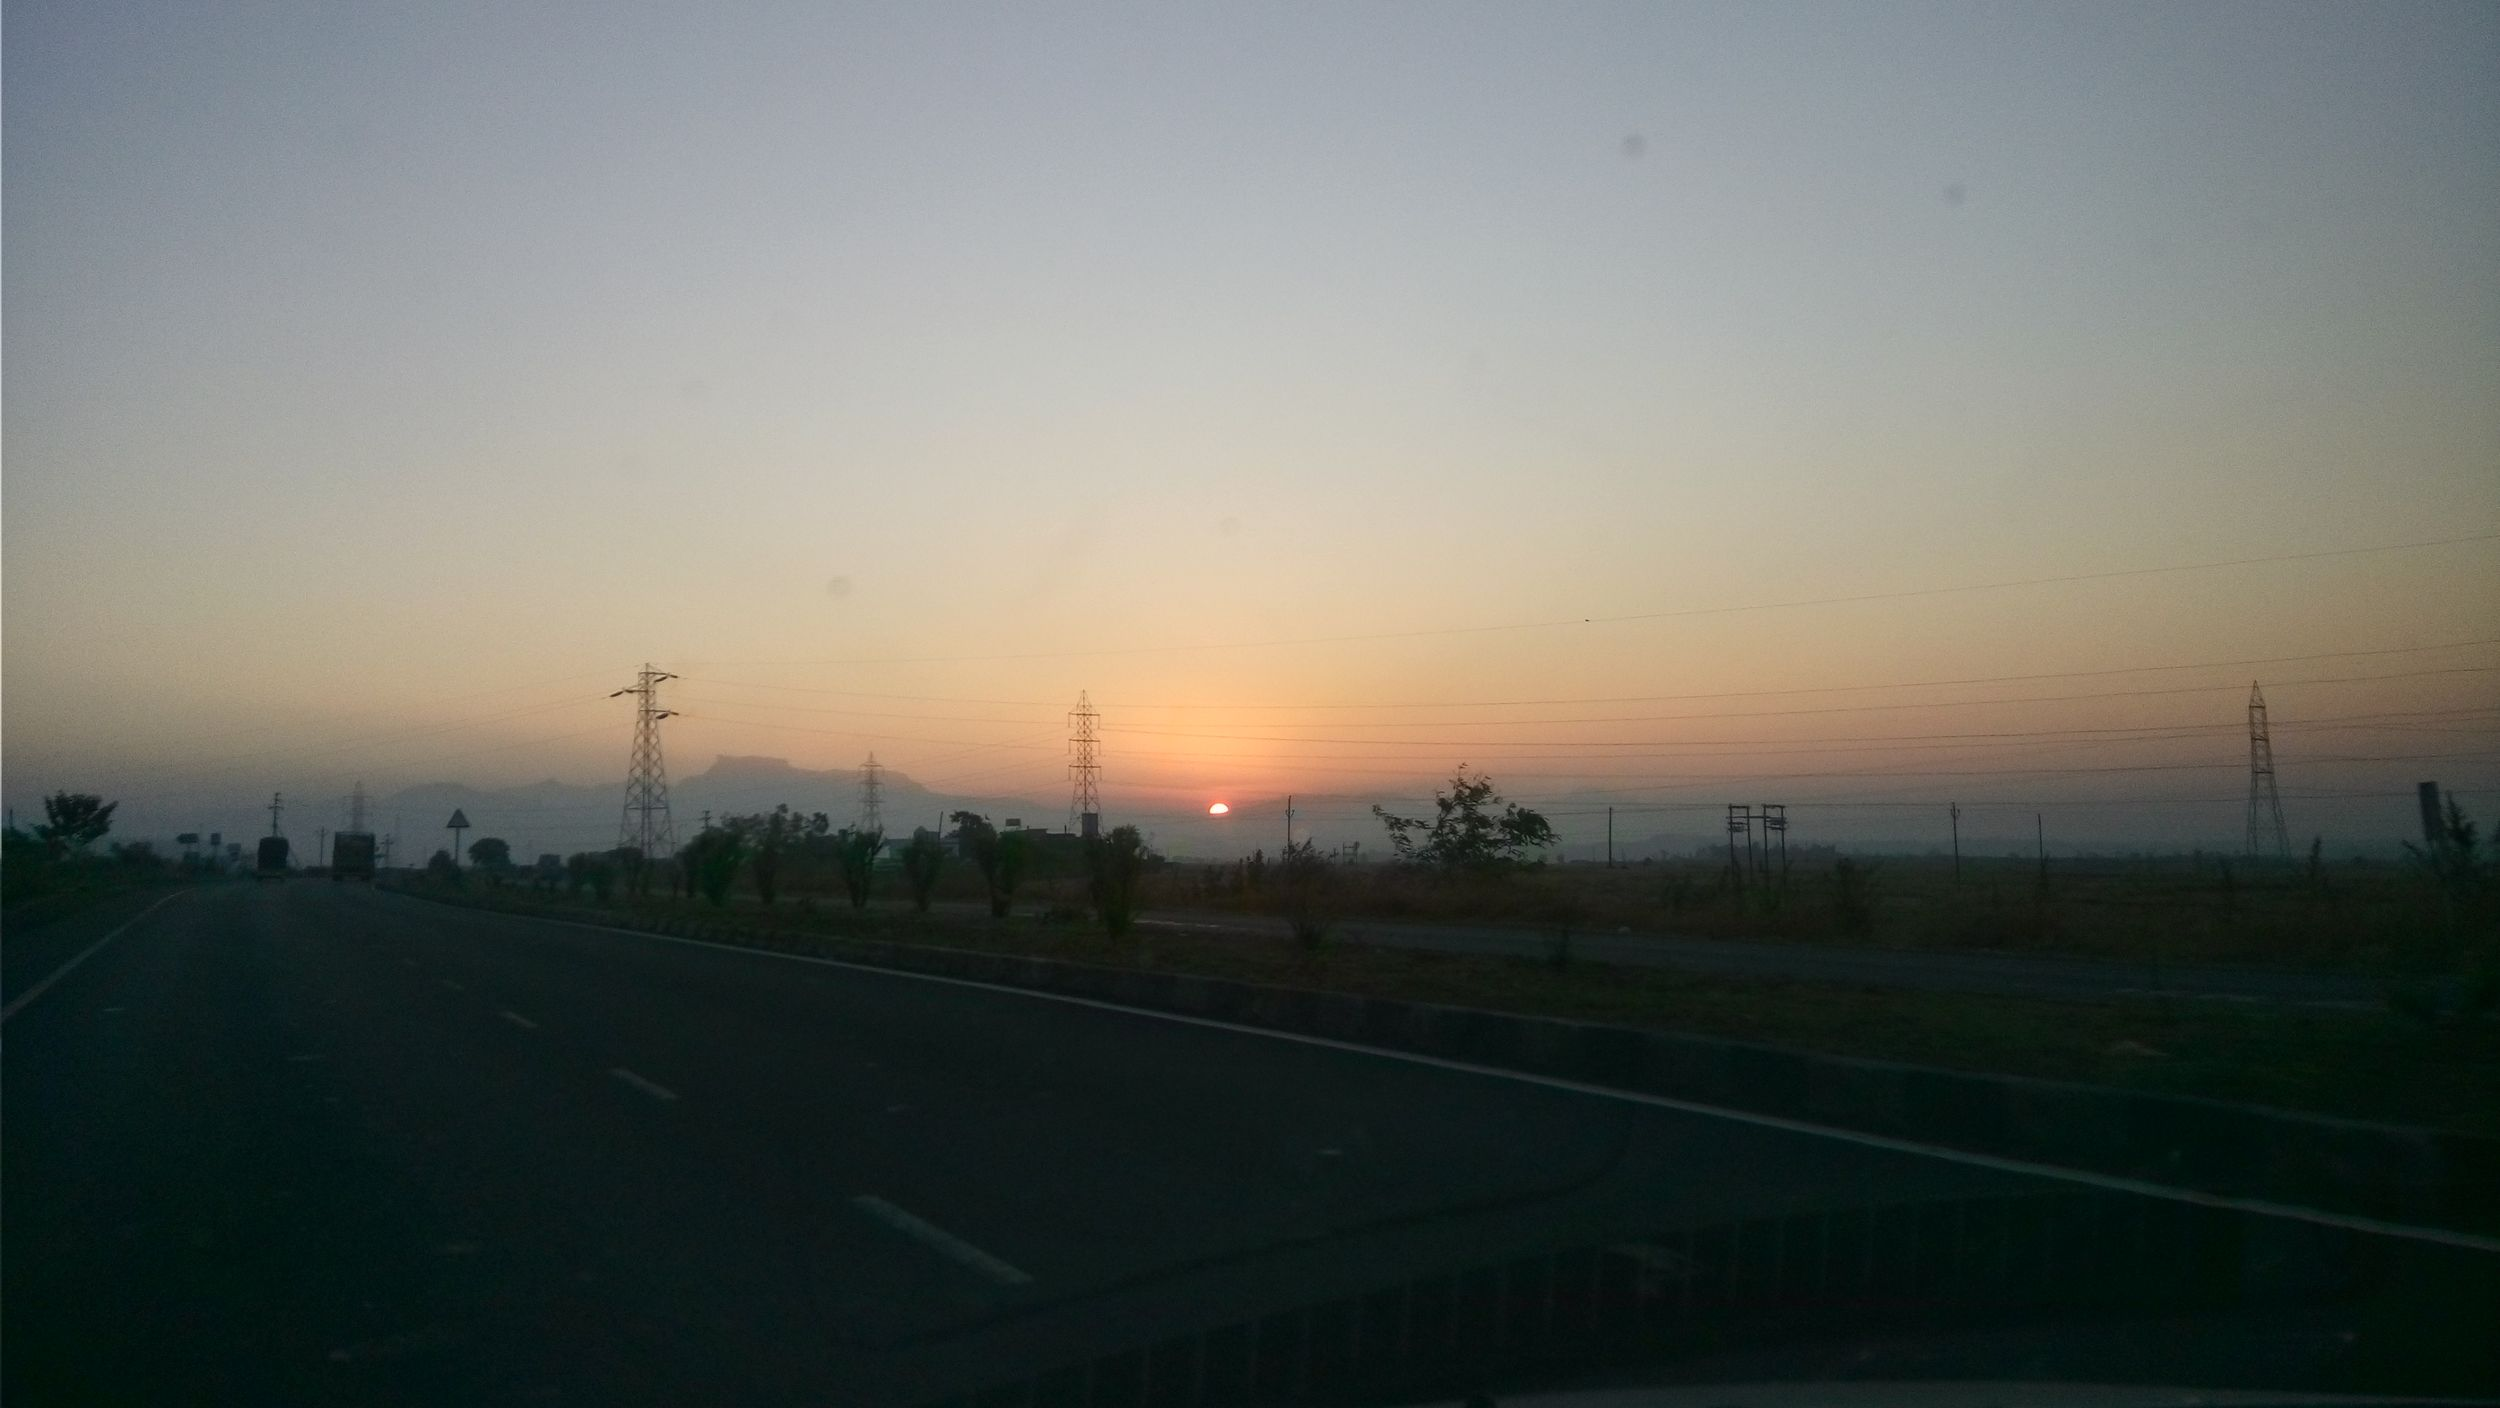 Believe me thats SUNRISE.... On my way to Nashik Niphad. Clicked on December 25th. Sunrise 43 Golden Moments Showcase: July